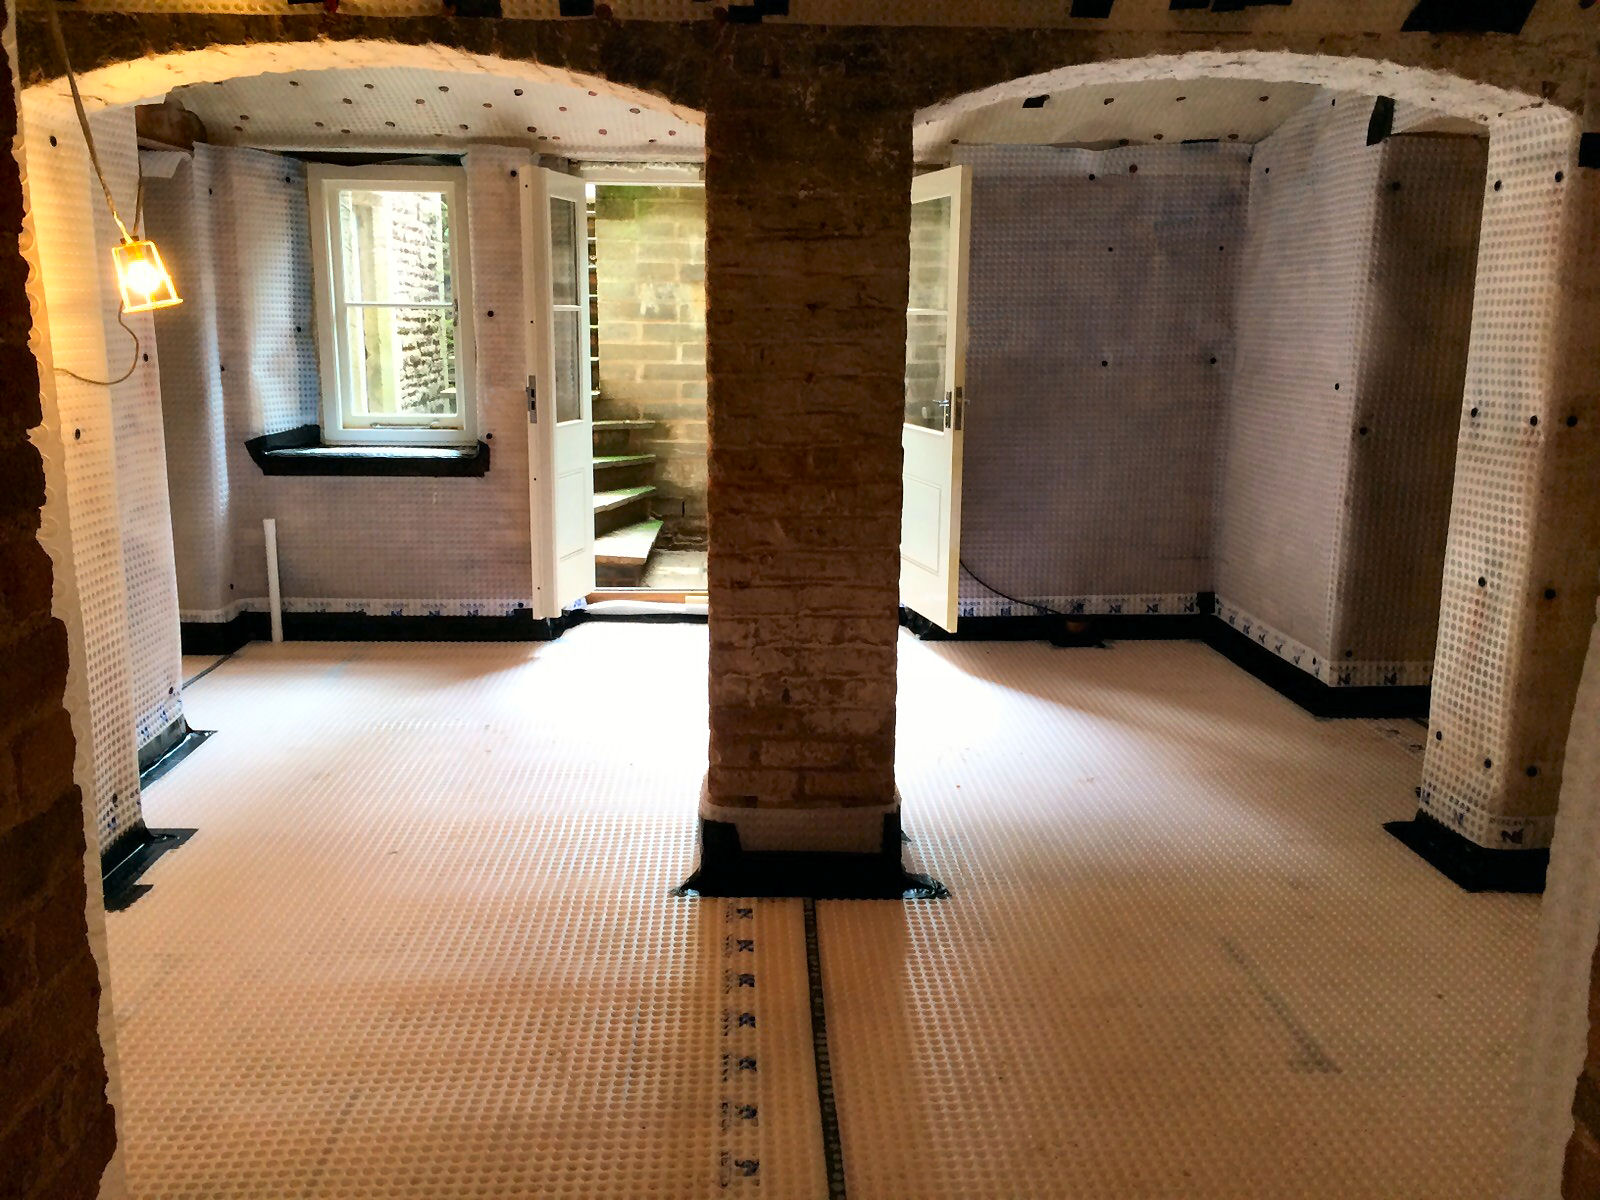 completed basement waterproofing installations protectahome rh protectahome co uk basement waterproofing systems training basement waterproofing systems diy